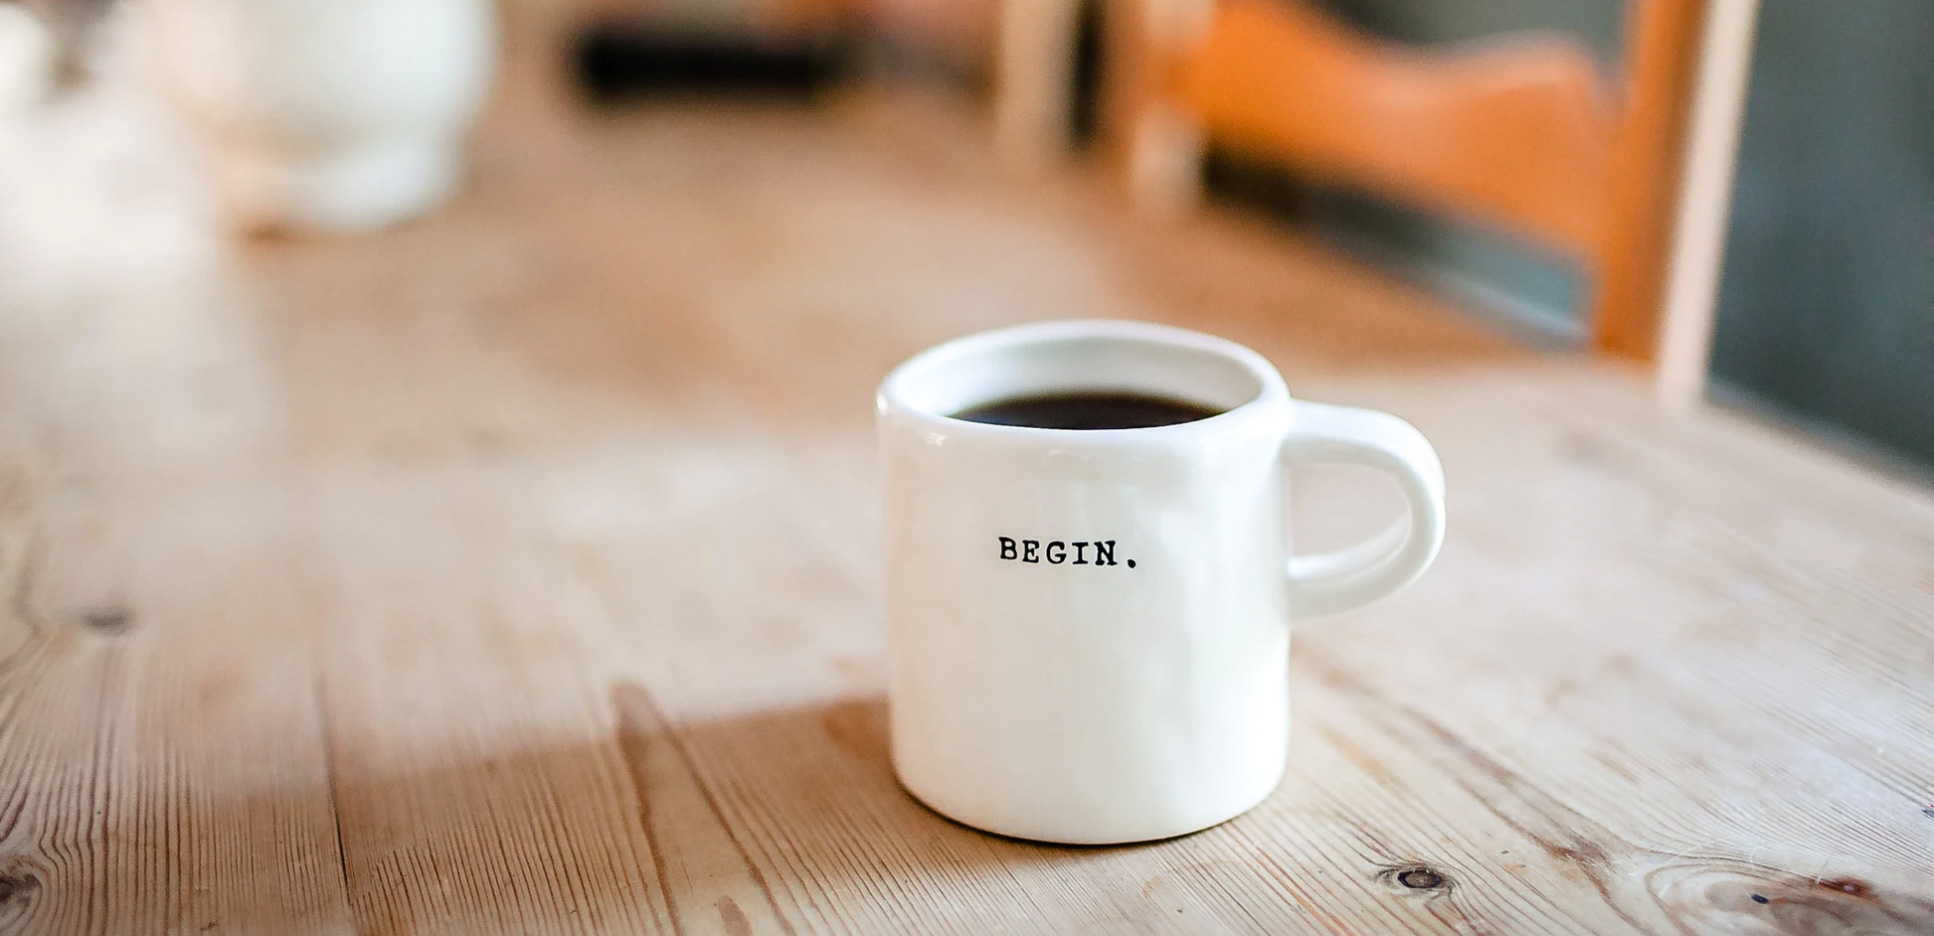 A coffee mug that says begin on it